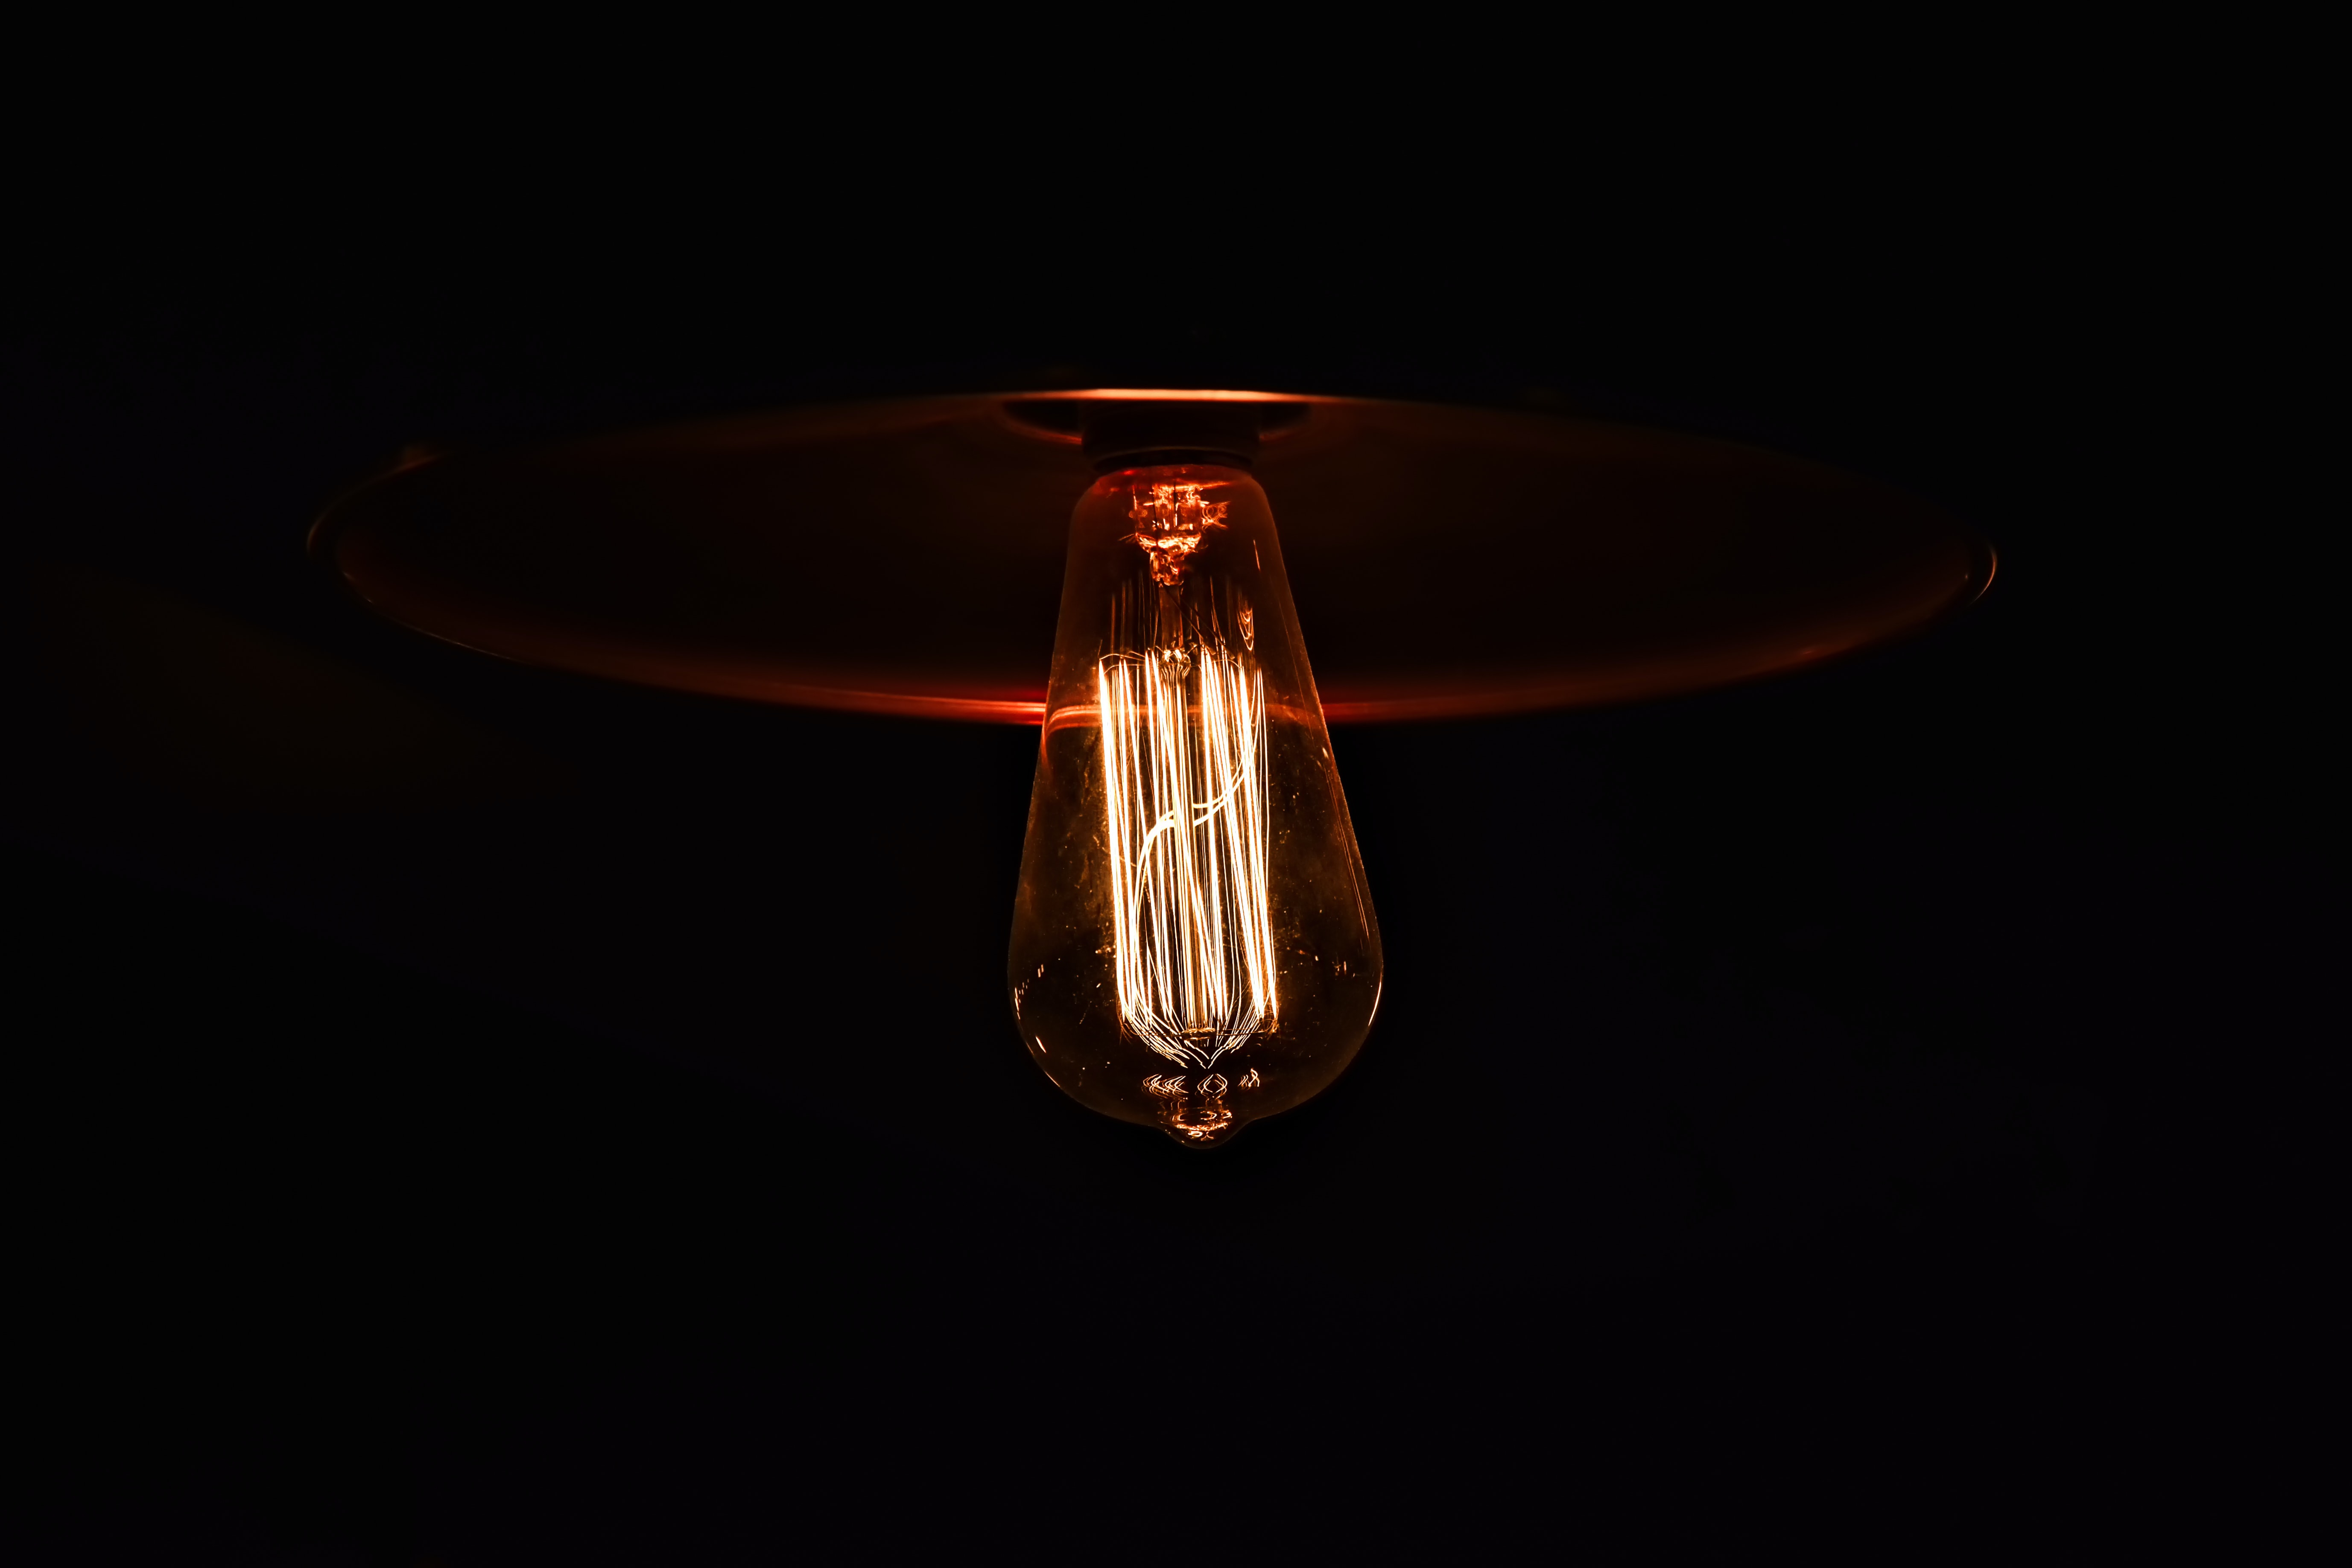 A faintly glowing light-bulb hanging from a ceiling in a dark room